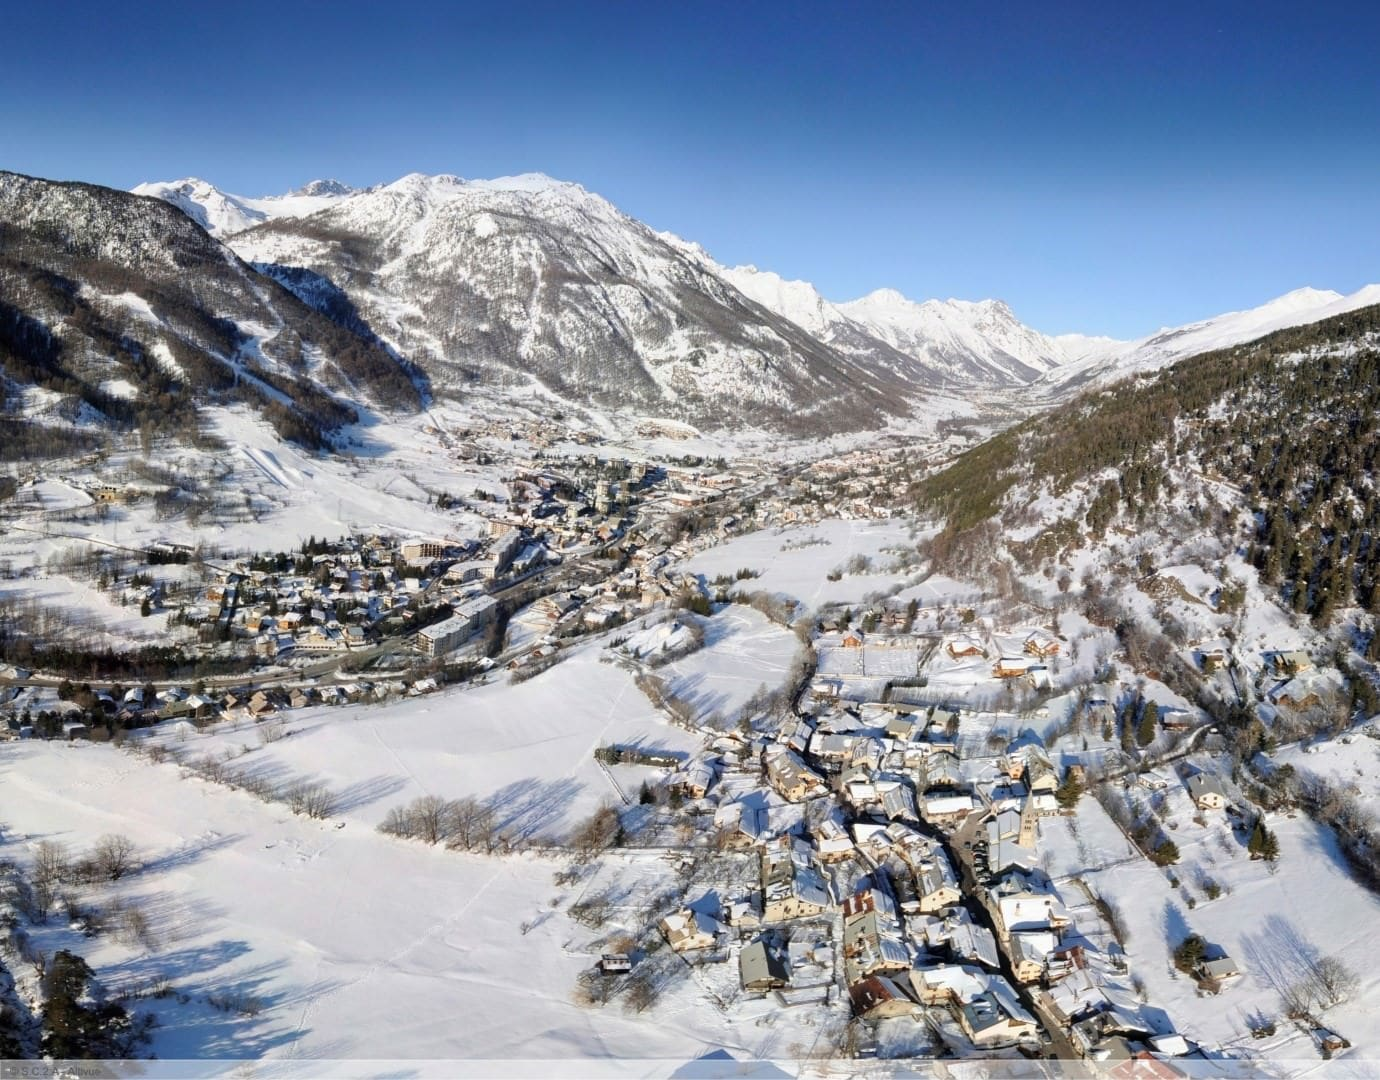 wintersport en aanbiedingen in Serre Chevalier